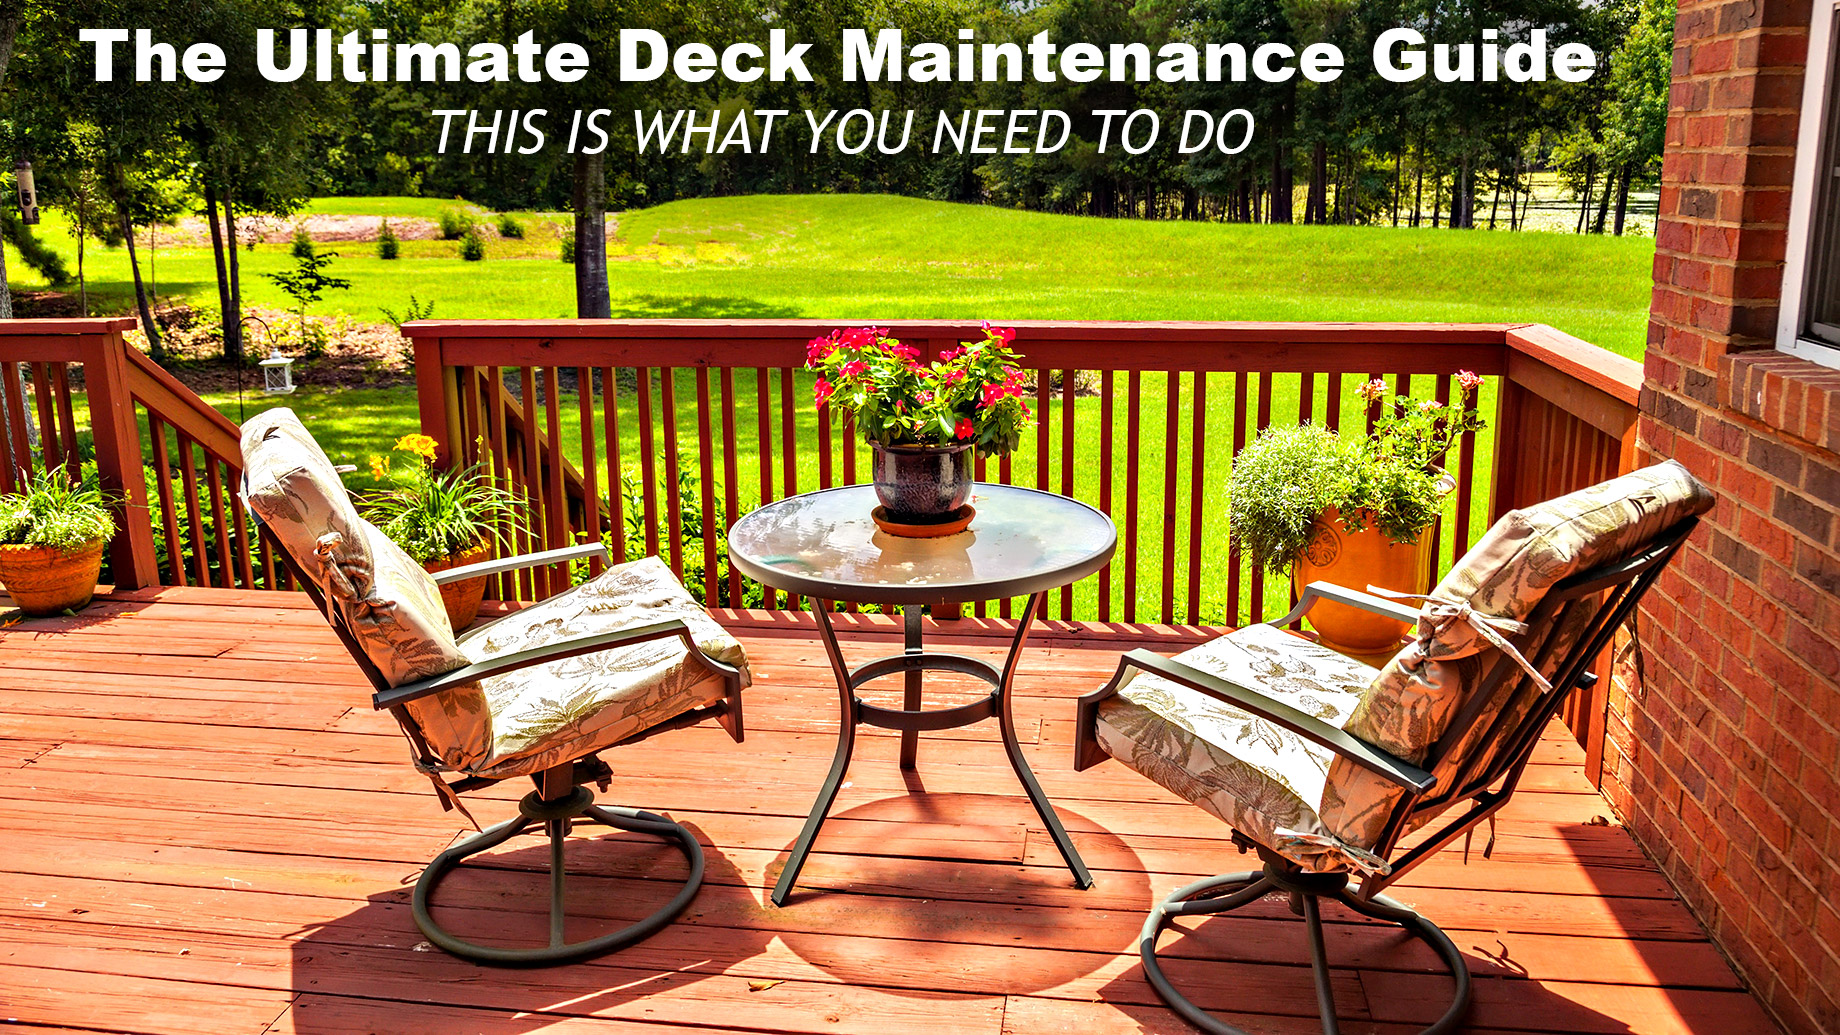 The Ultimate Deck Maintenance Guide - This is What You Need to Do